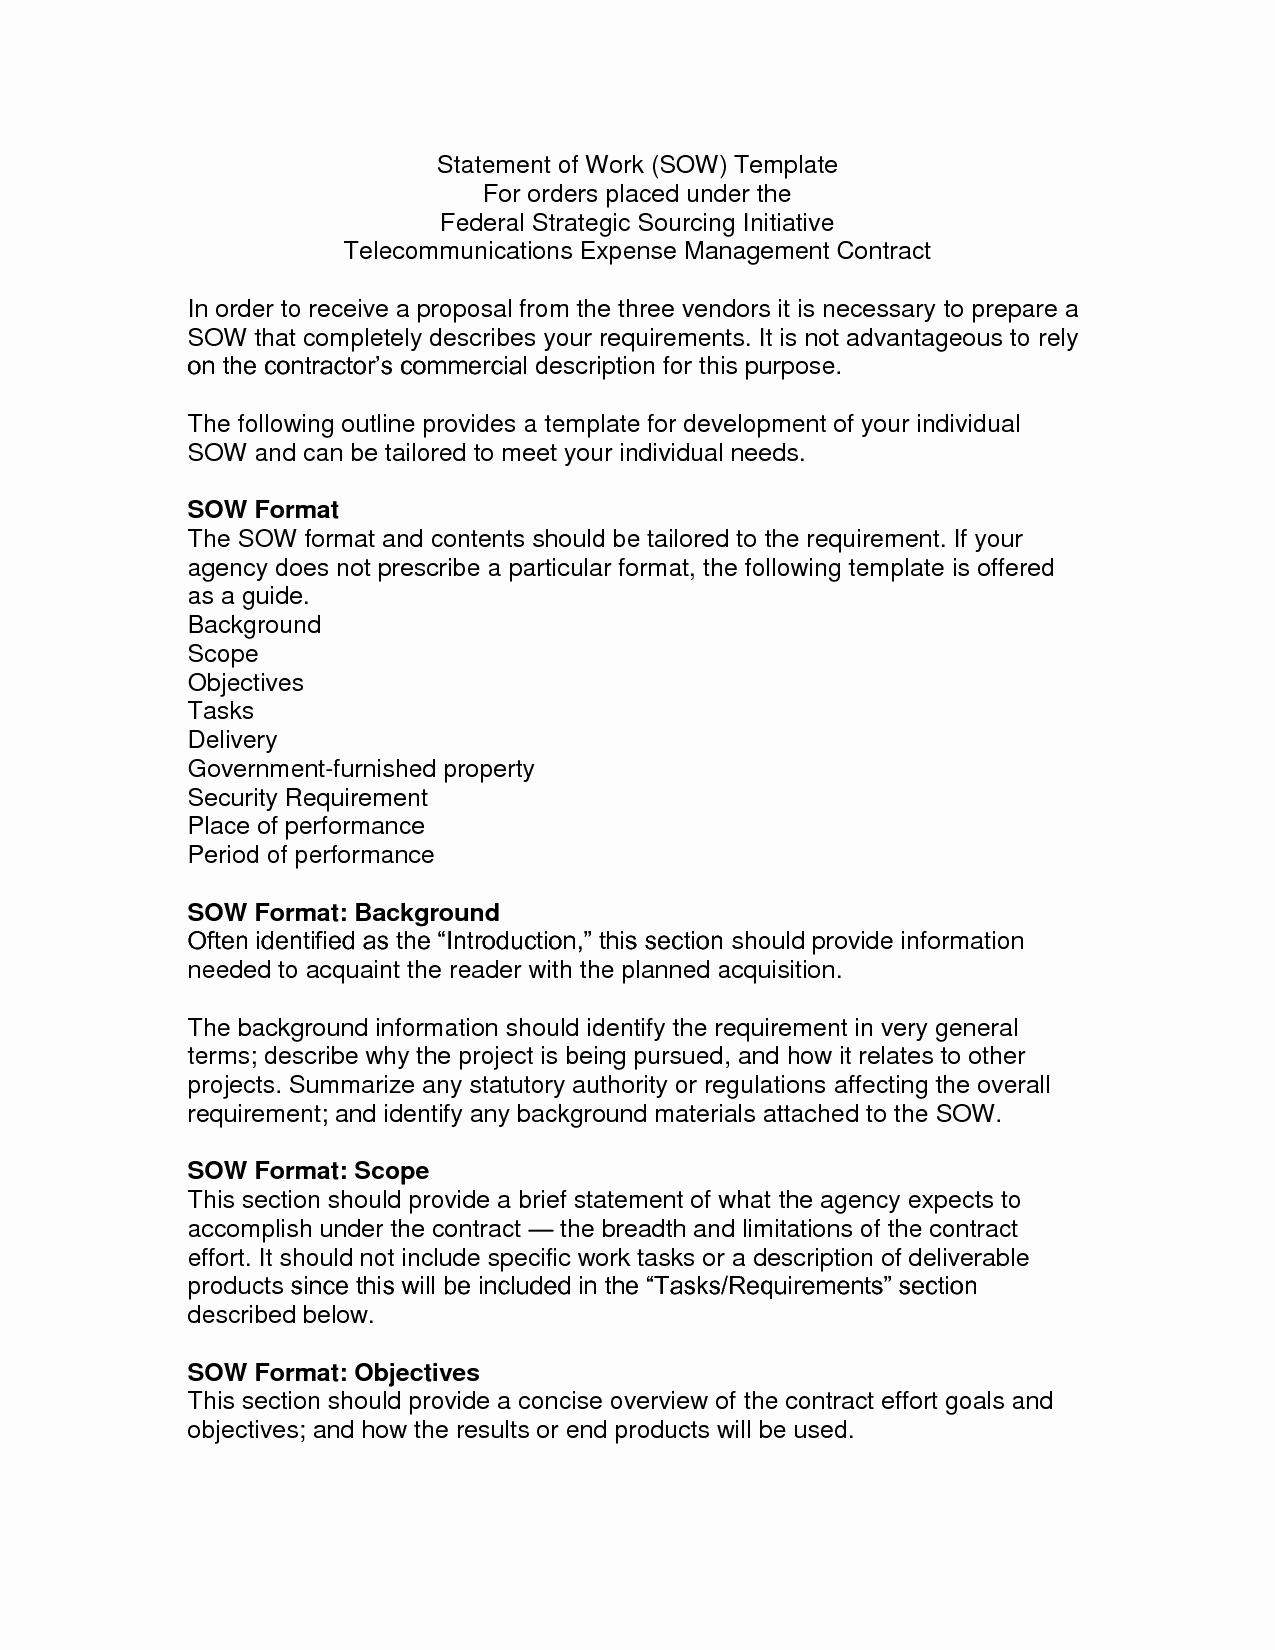 Project Statement Of Work Template New Statement Of Work sow Template Doc by Kqv Free